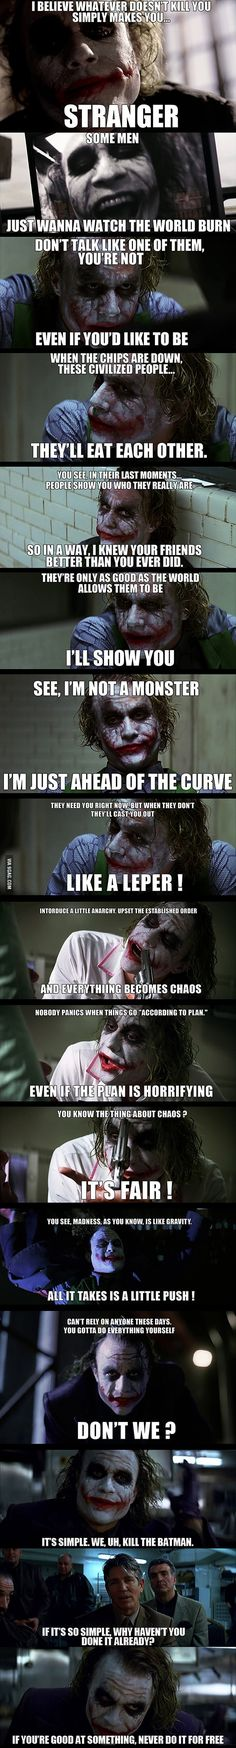 #MFC4012 The greatest quotes from the Dark Knight and Heath Ledger (RIP). The Dark Knight is my favourite film of all time